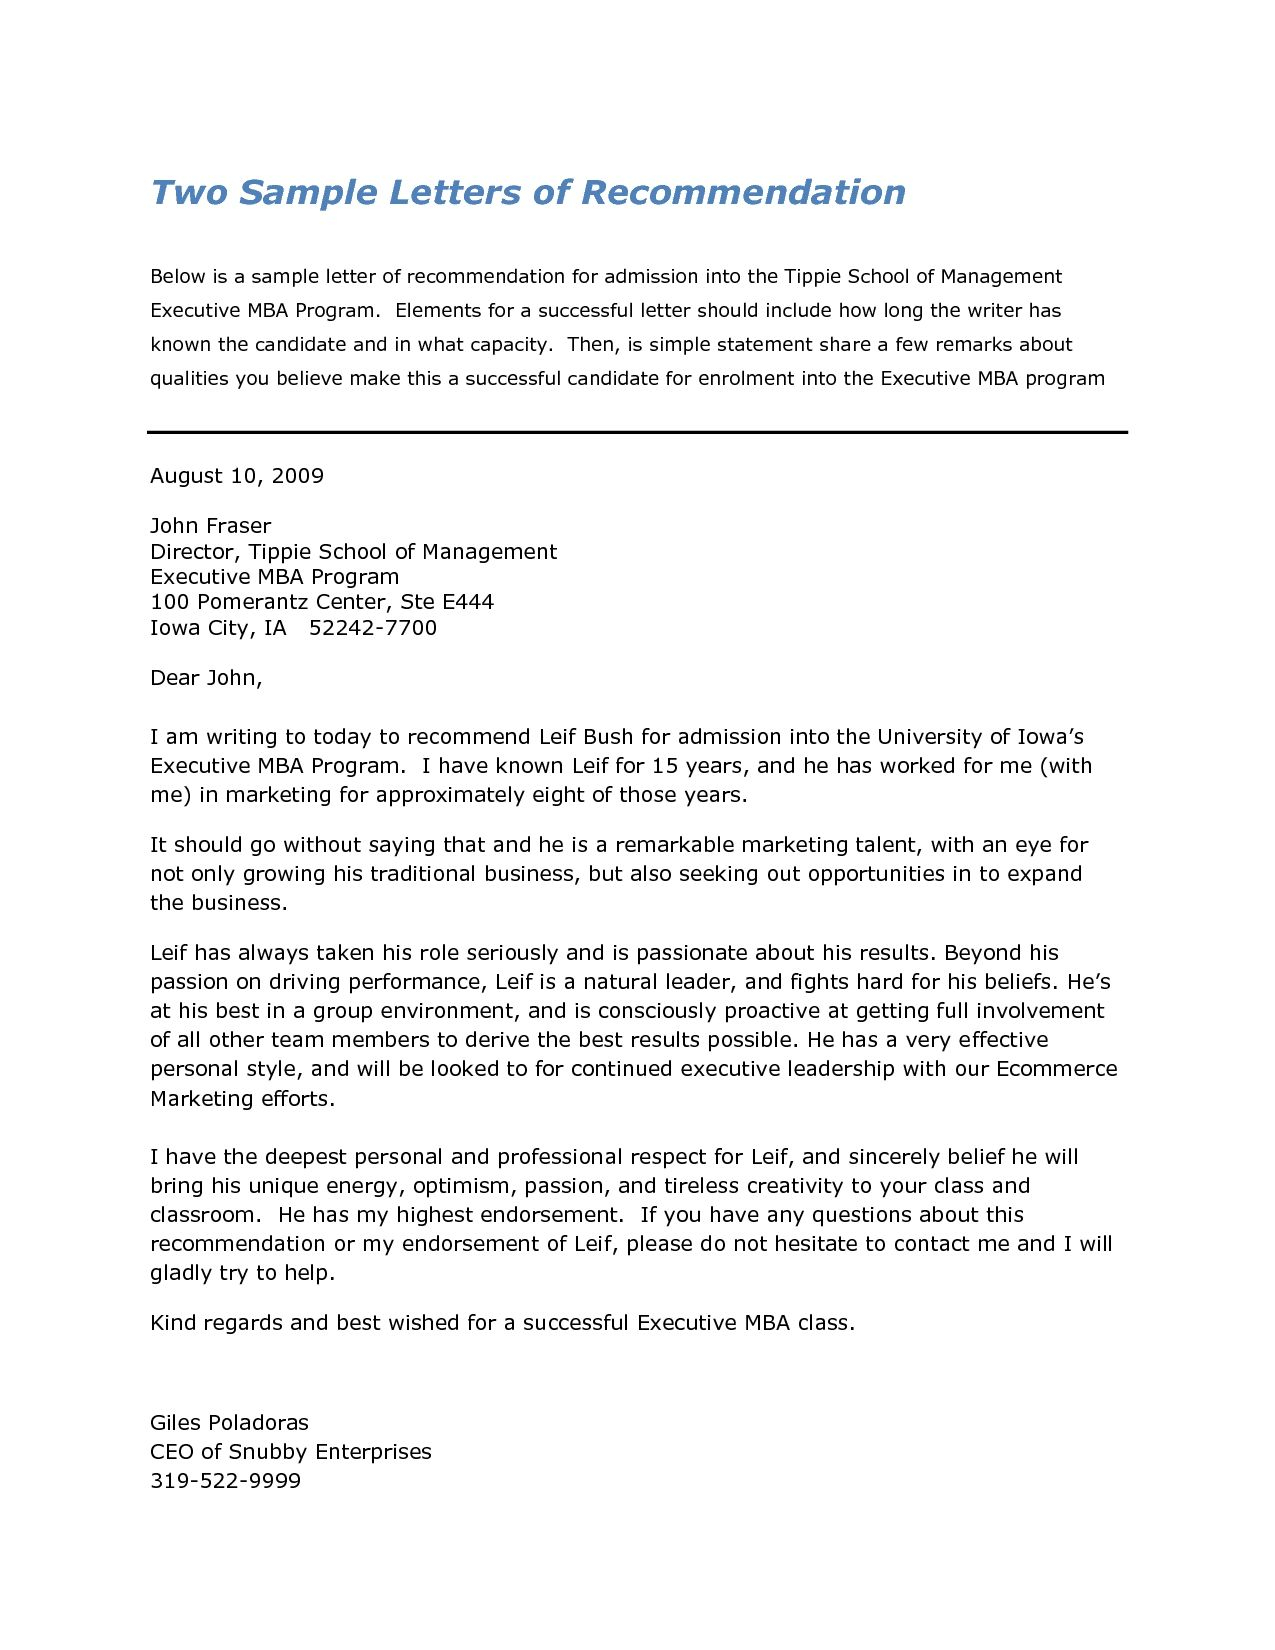 Recommendation Letter For Harvard Business School Pertaining inside proportions 1275 X 1650